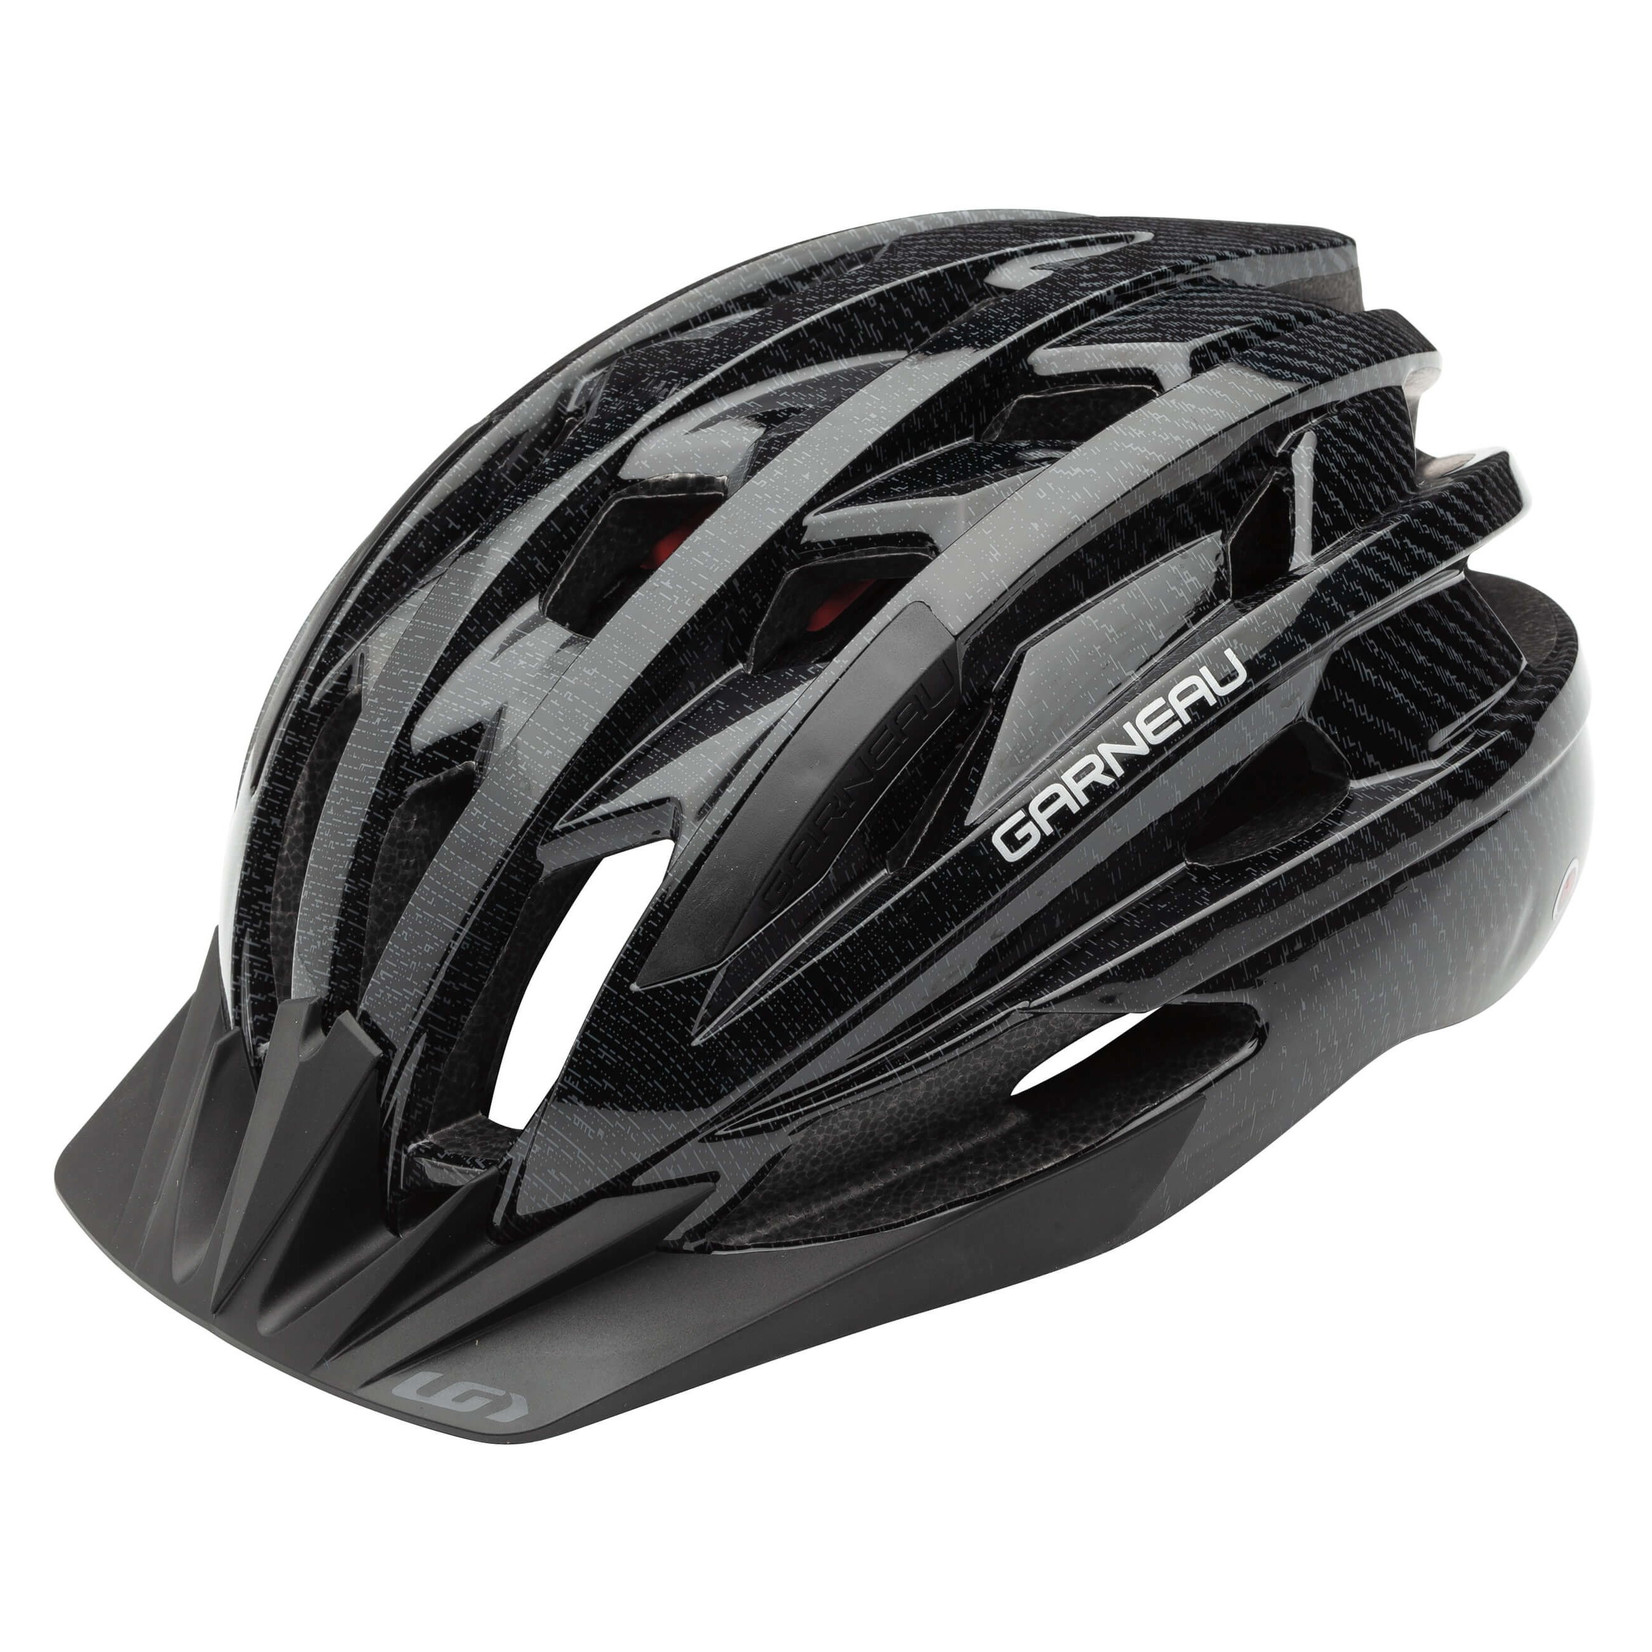 Louis Garneau Women's Tiffany Cycling Helmet